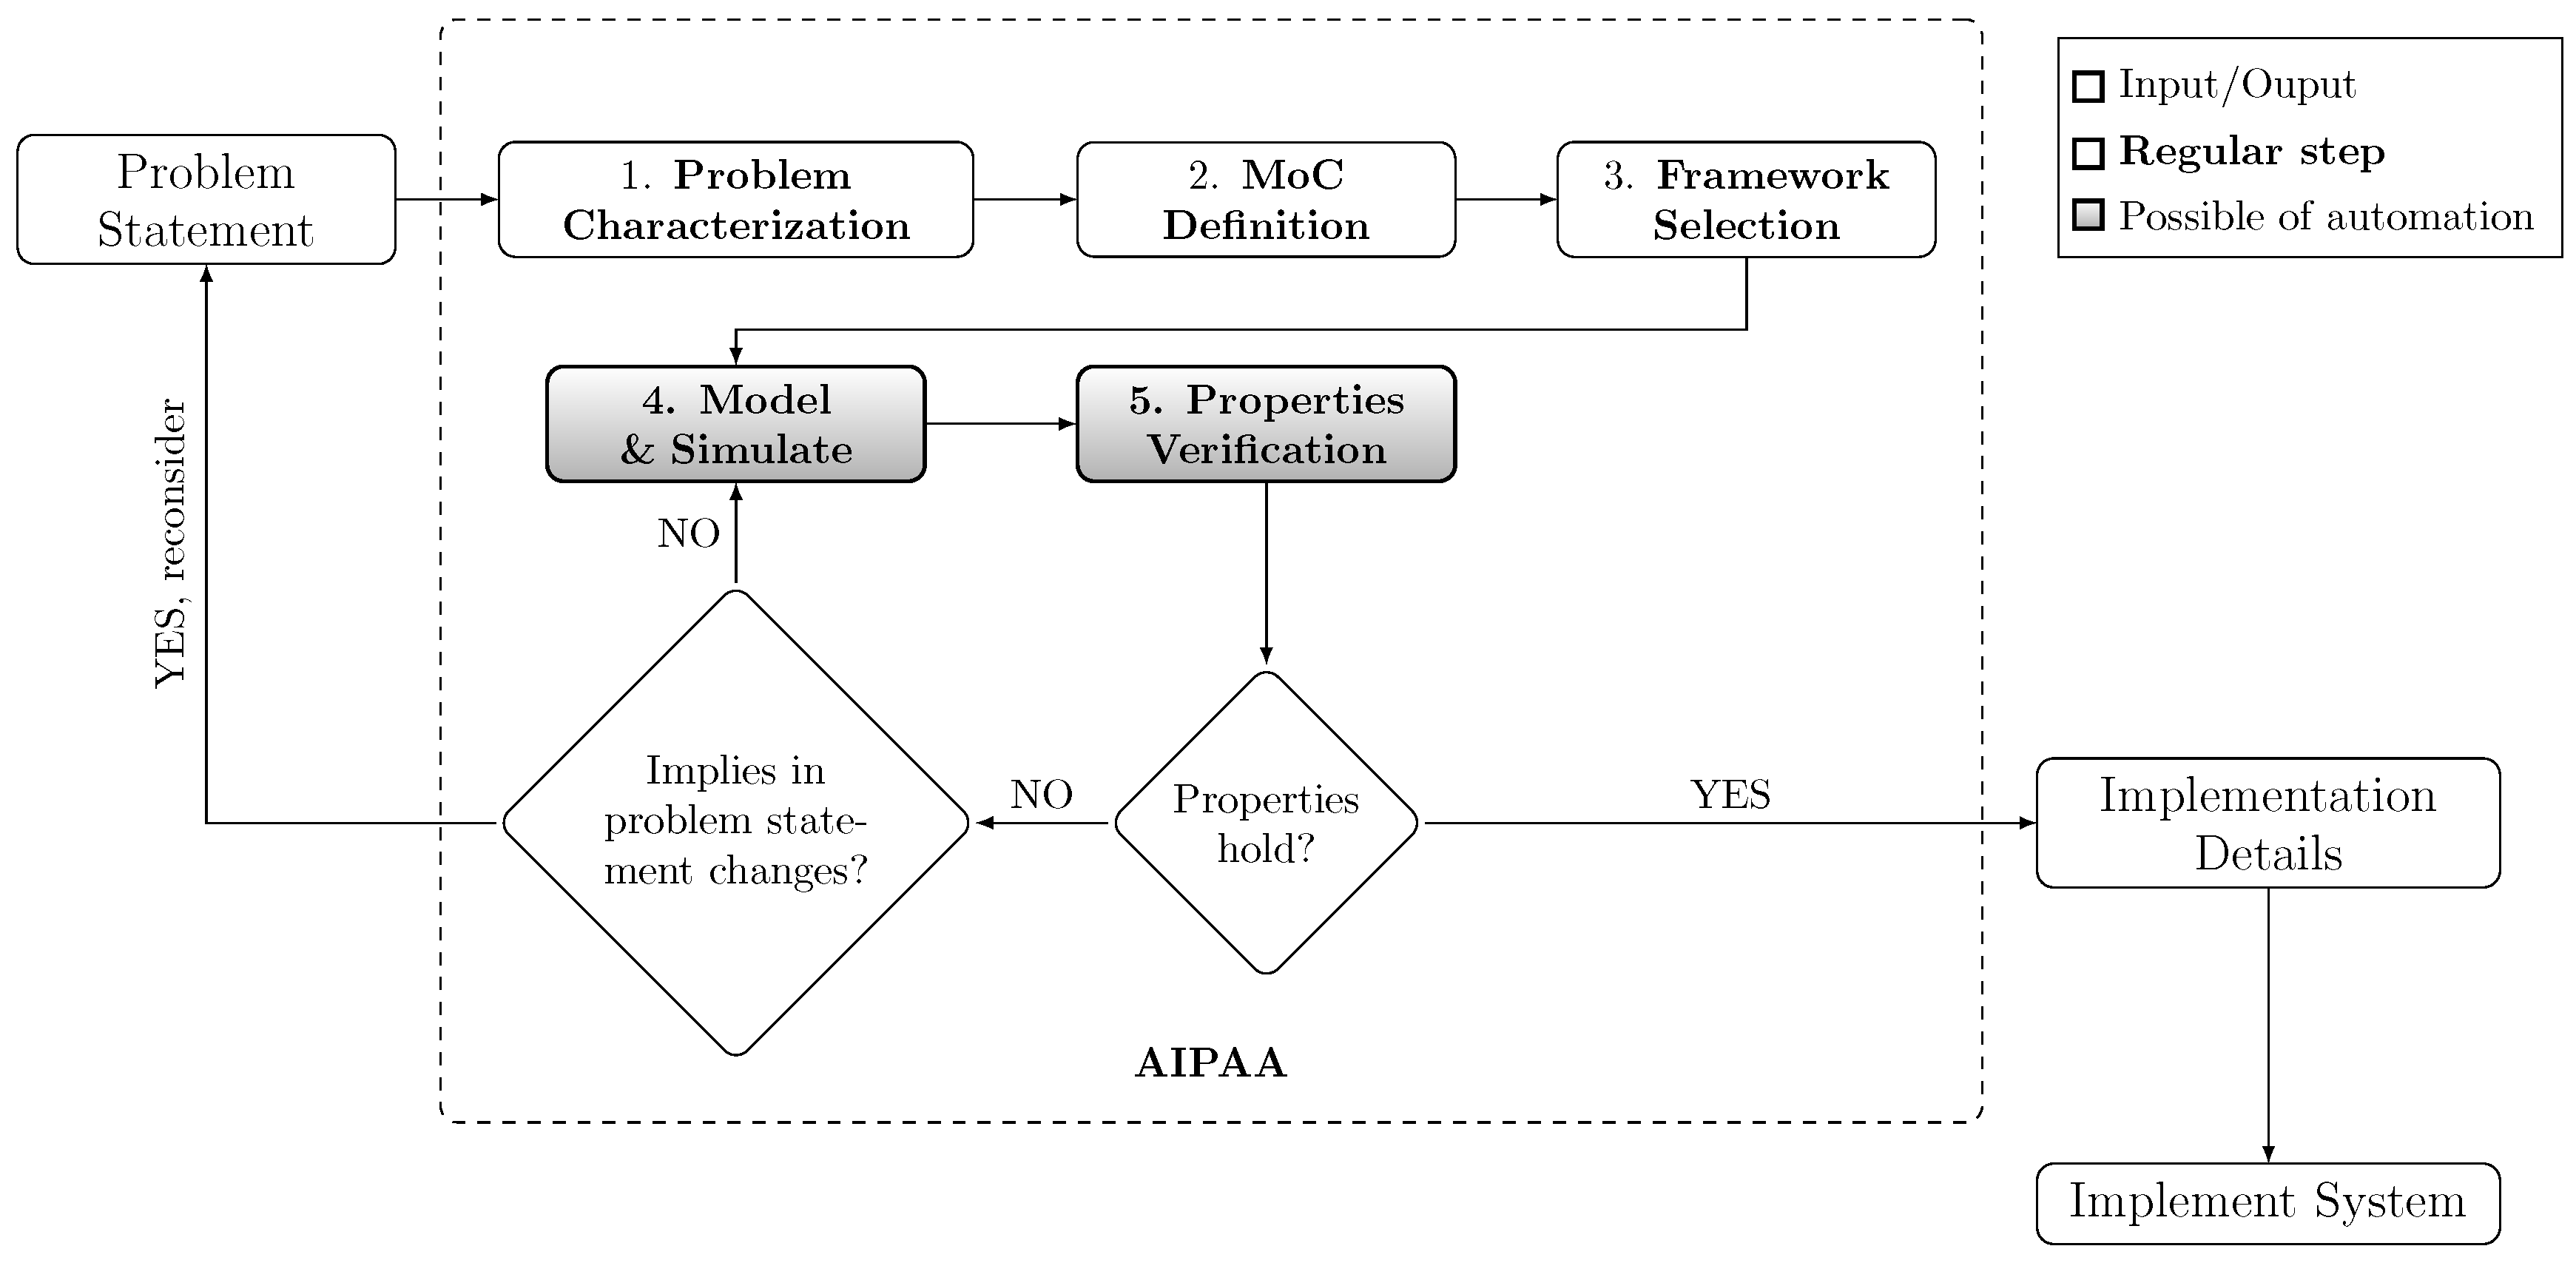 Information Free Full Text Analysis And Identification Of Possible Automation Approaches For Embedded Systems Design Flows Html